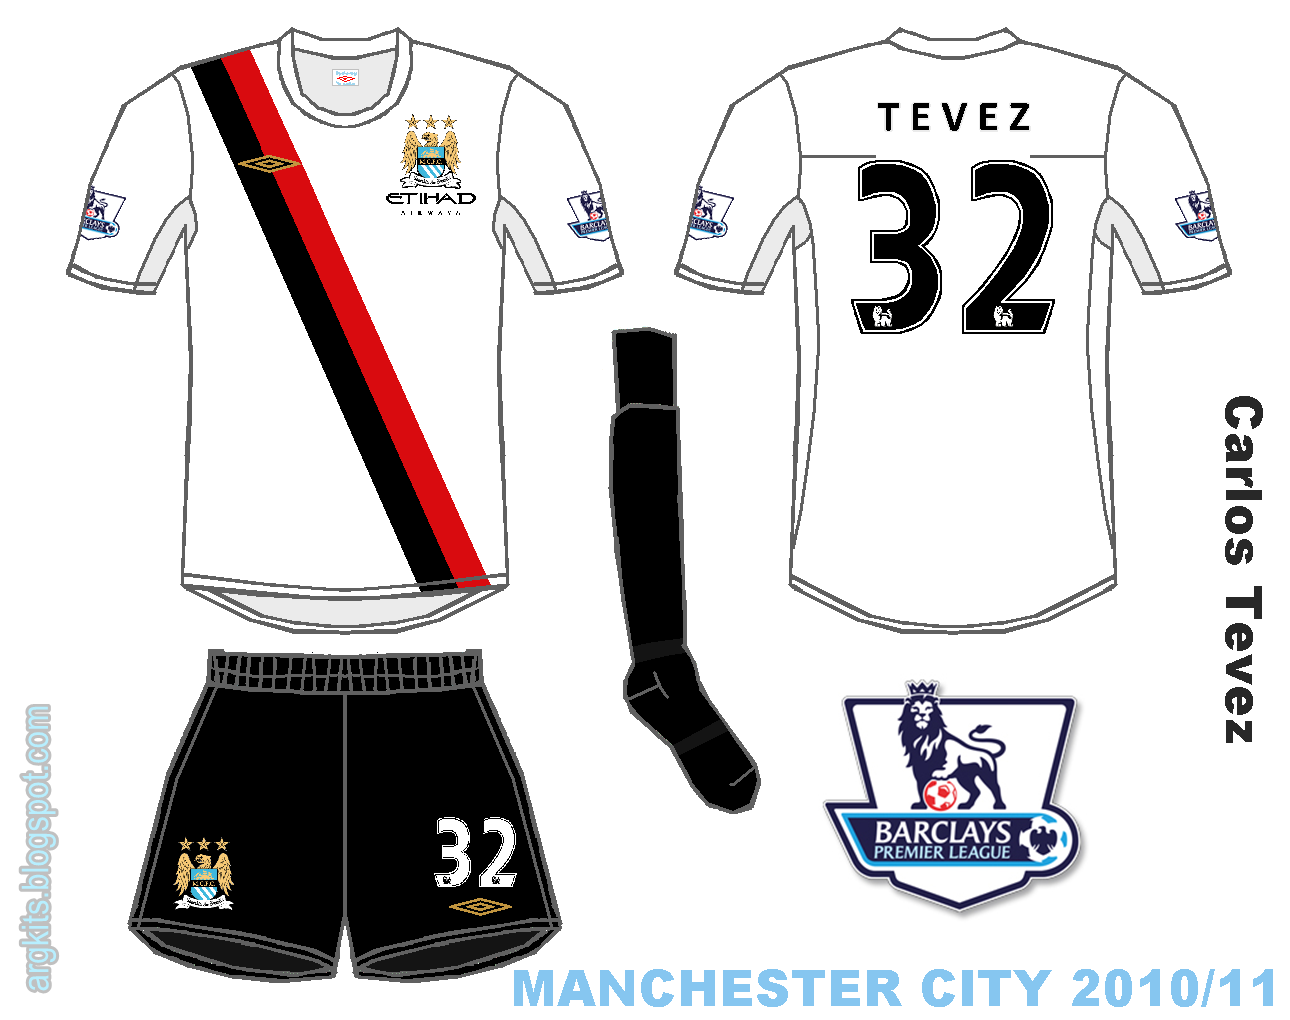 Manchester city kits for dream league soccer courts at fairfield